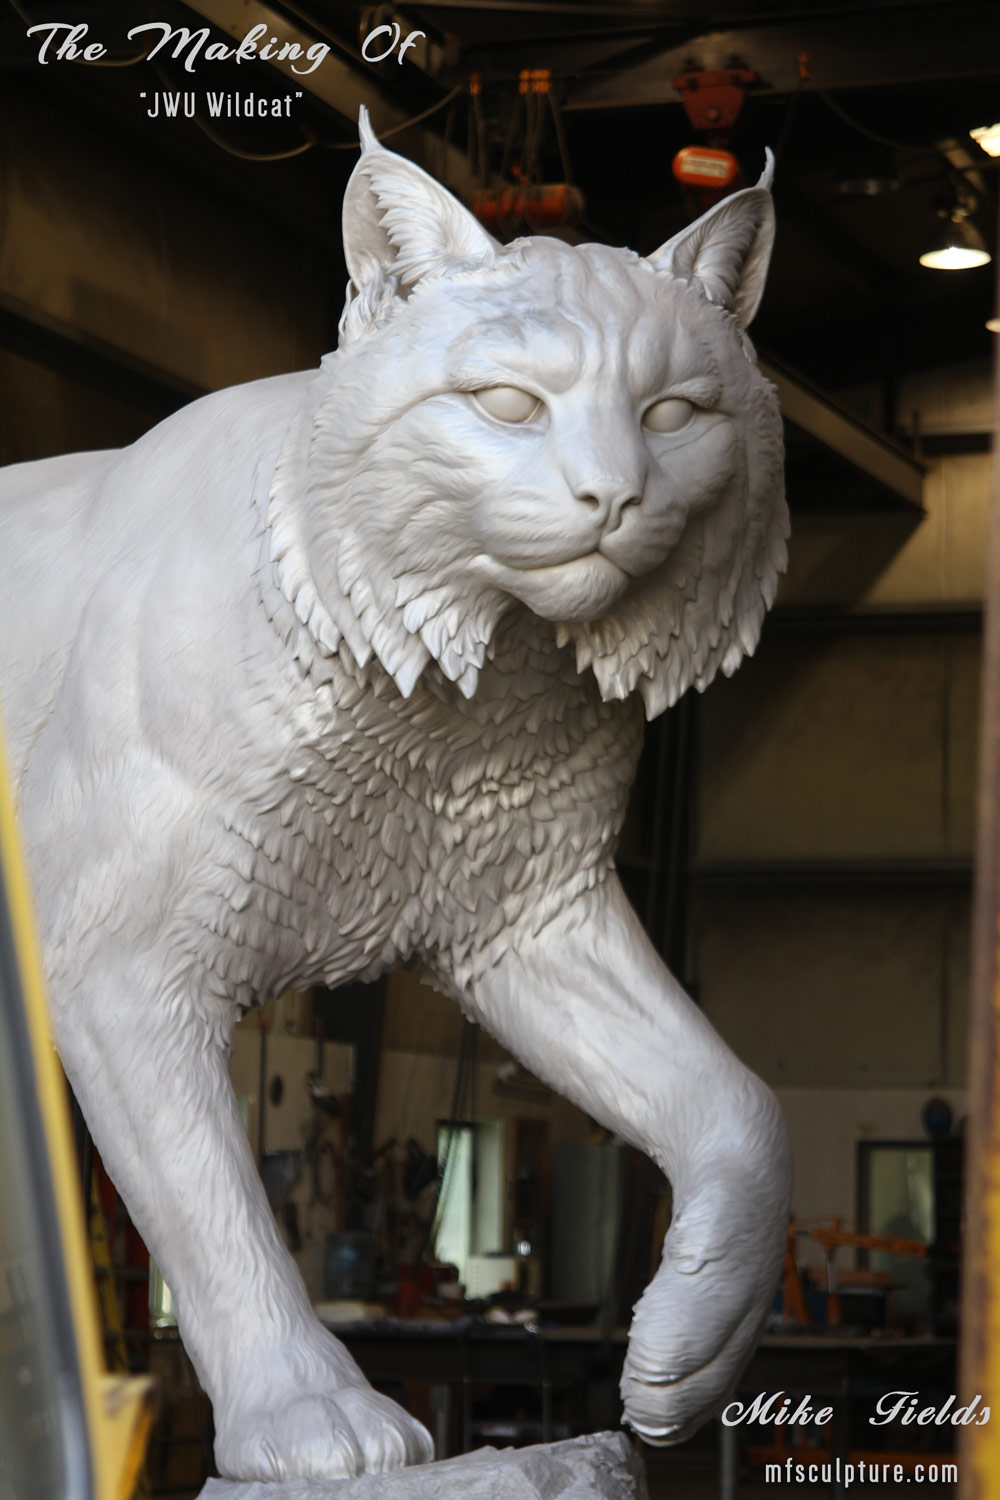 Mike Fields Making Of JWU Wildcat Sculpture